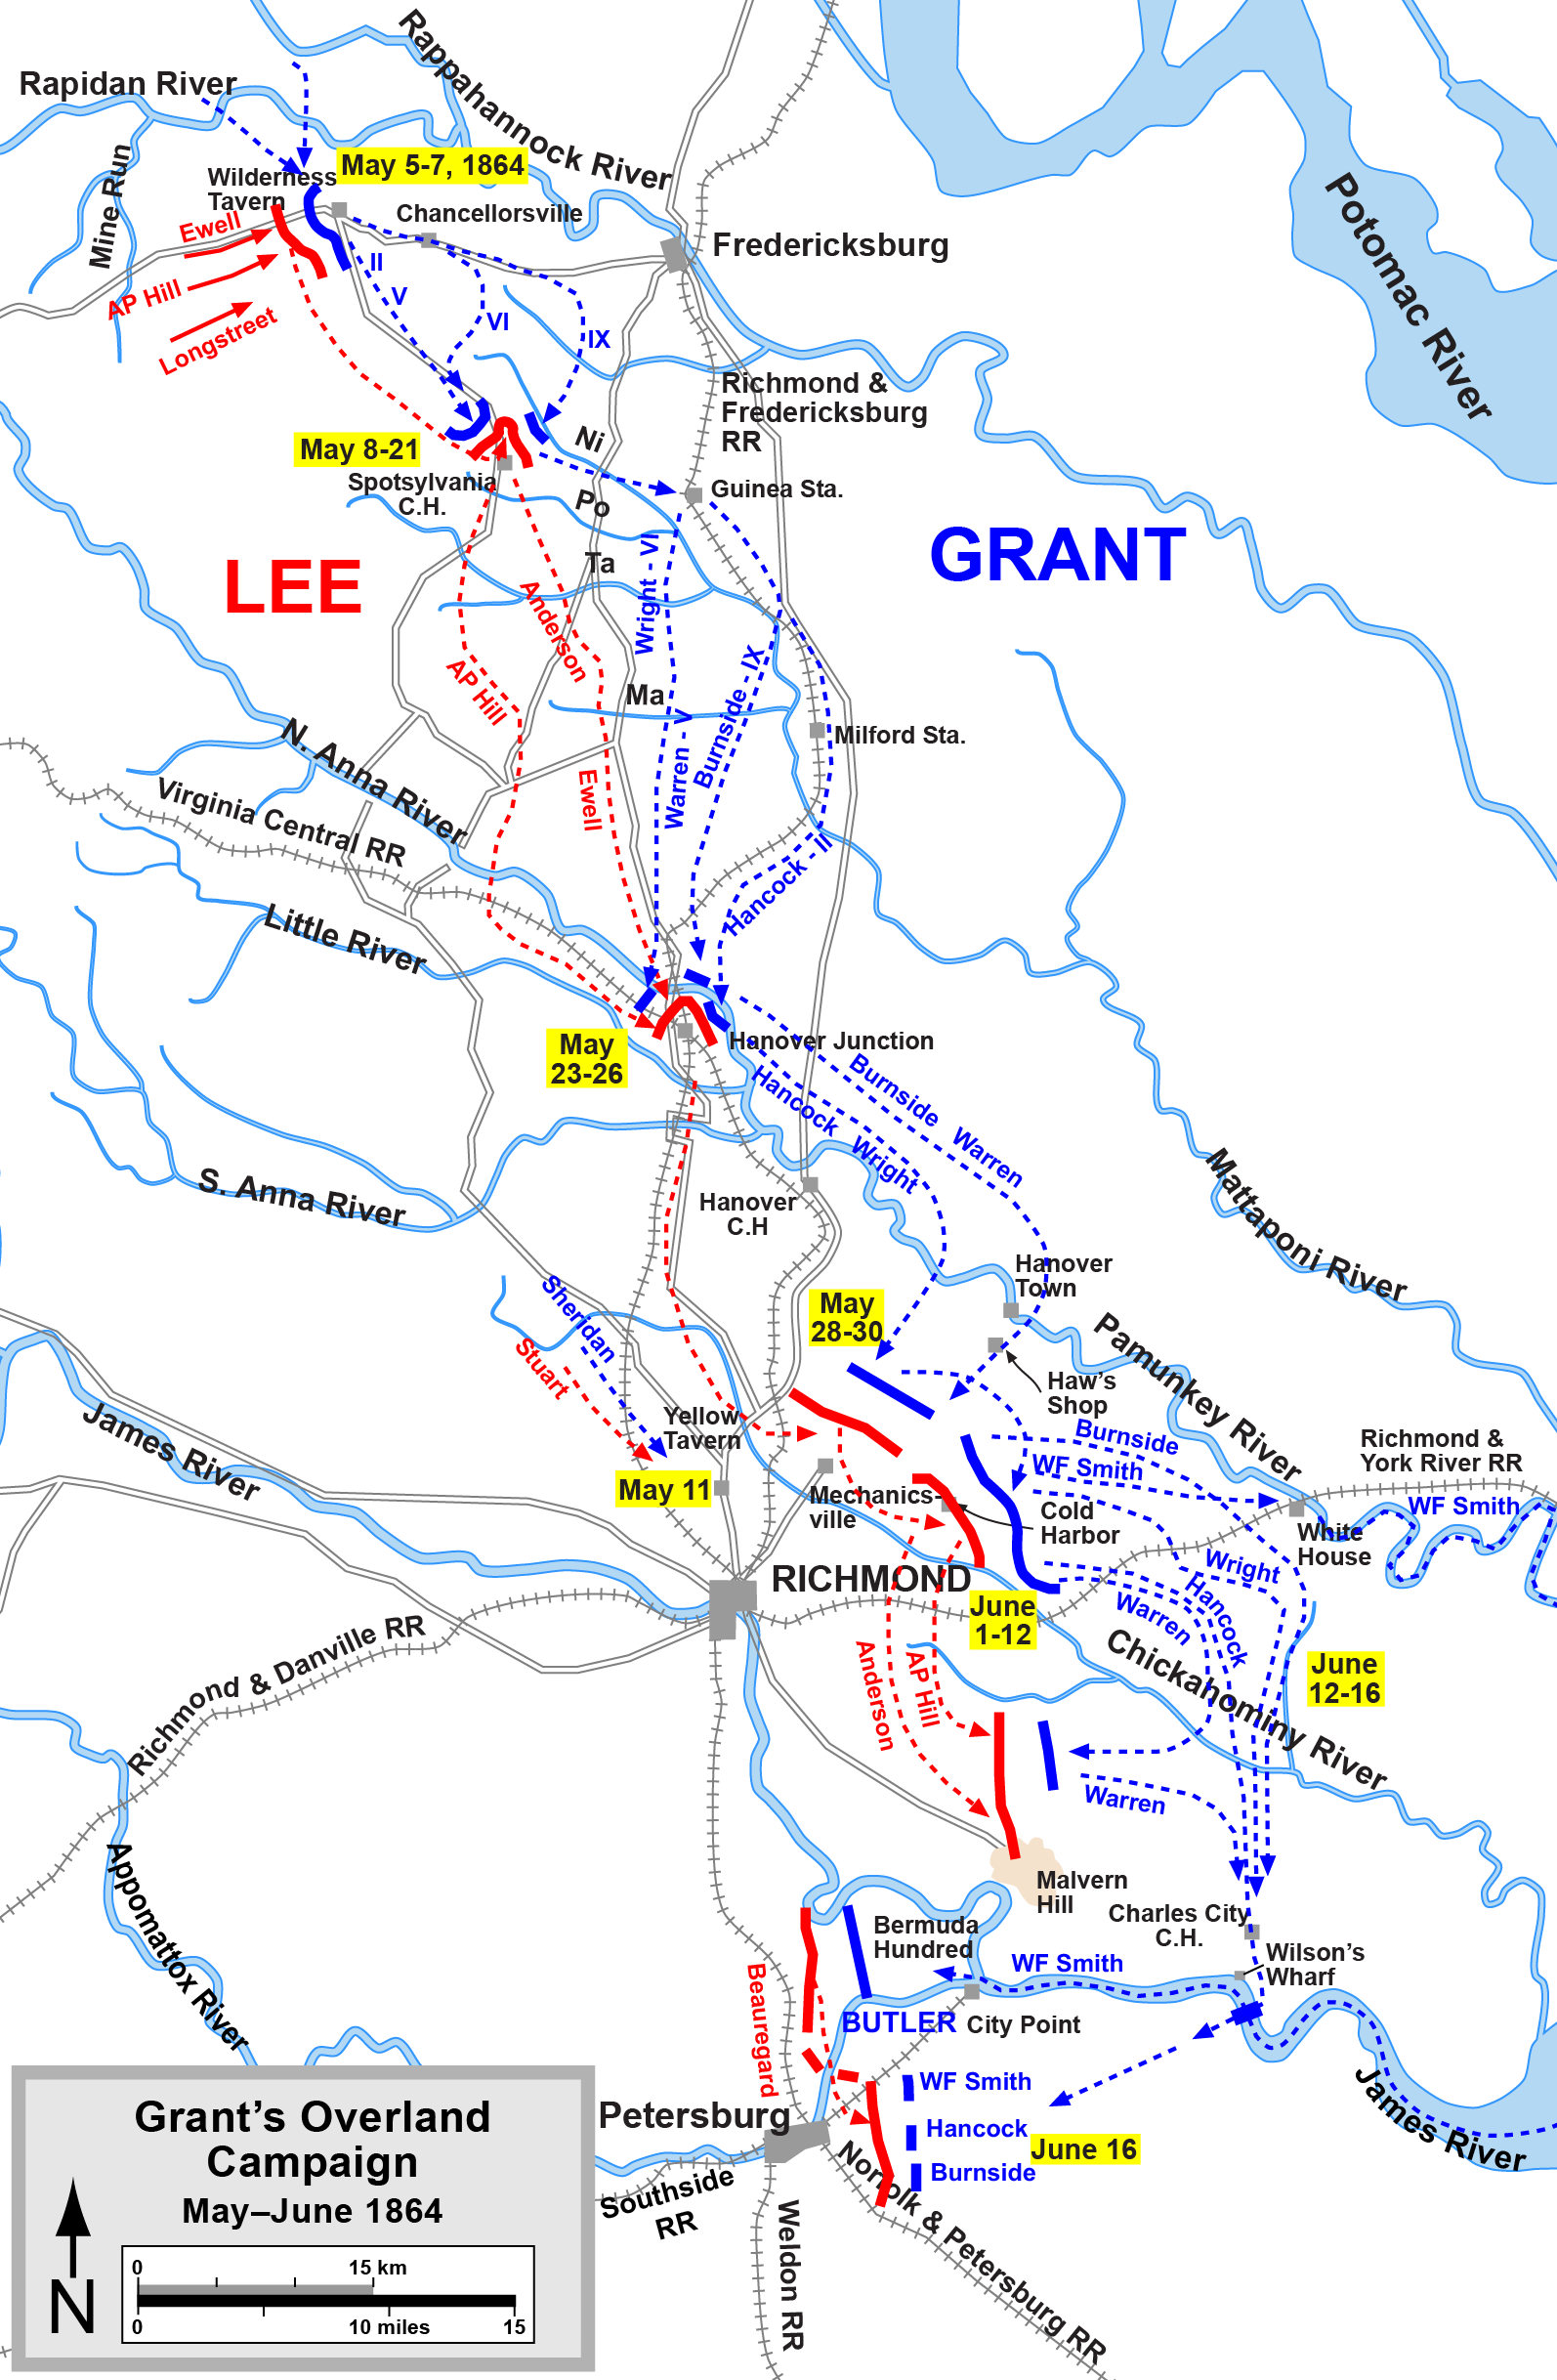 the civil war summary analysis grant launched his overland campaign